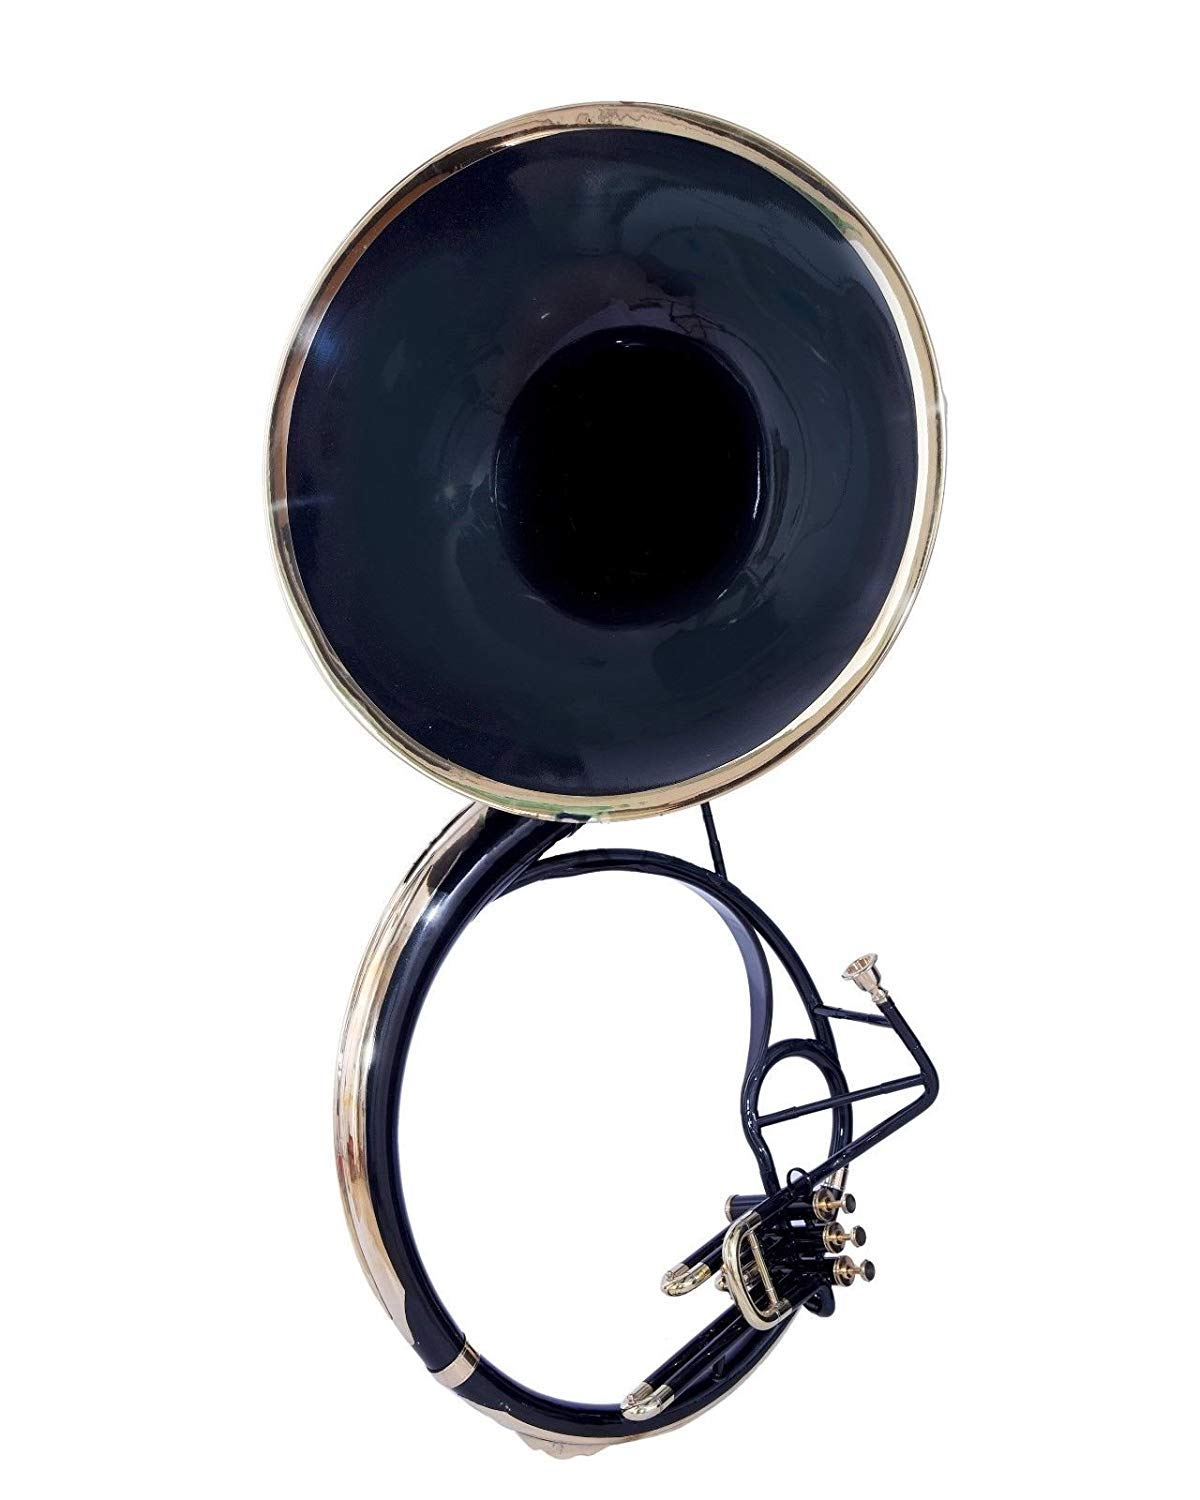 Nasir Ali New student model beautiful Sousaphone Bb 21'' Black